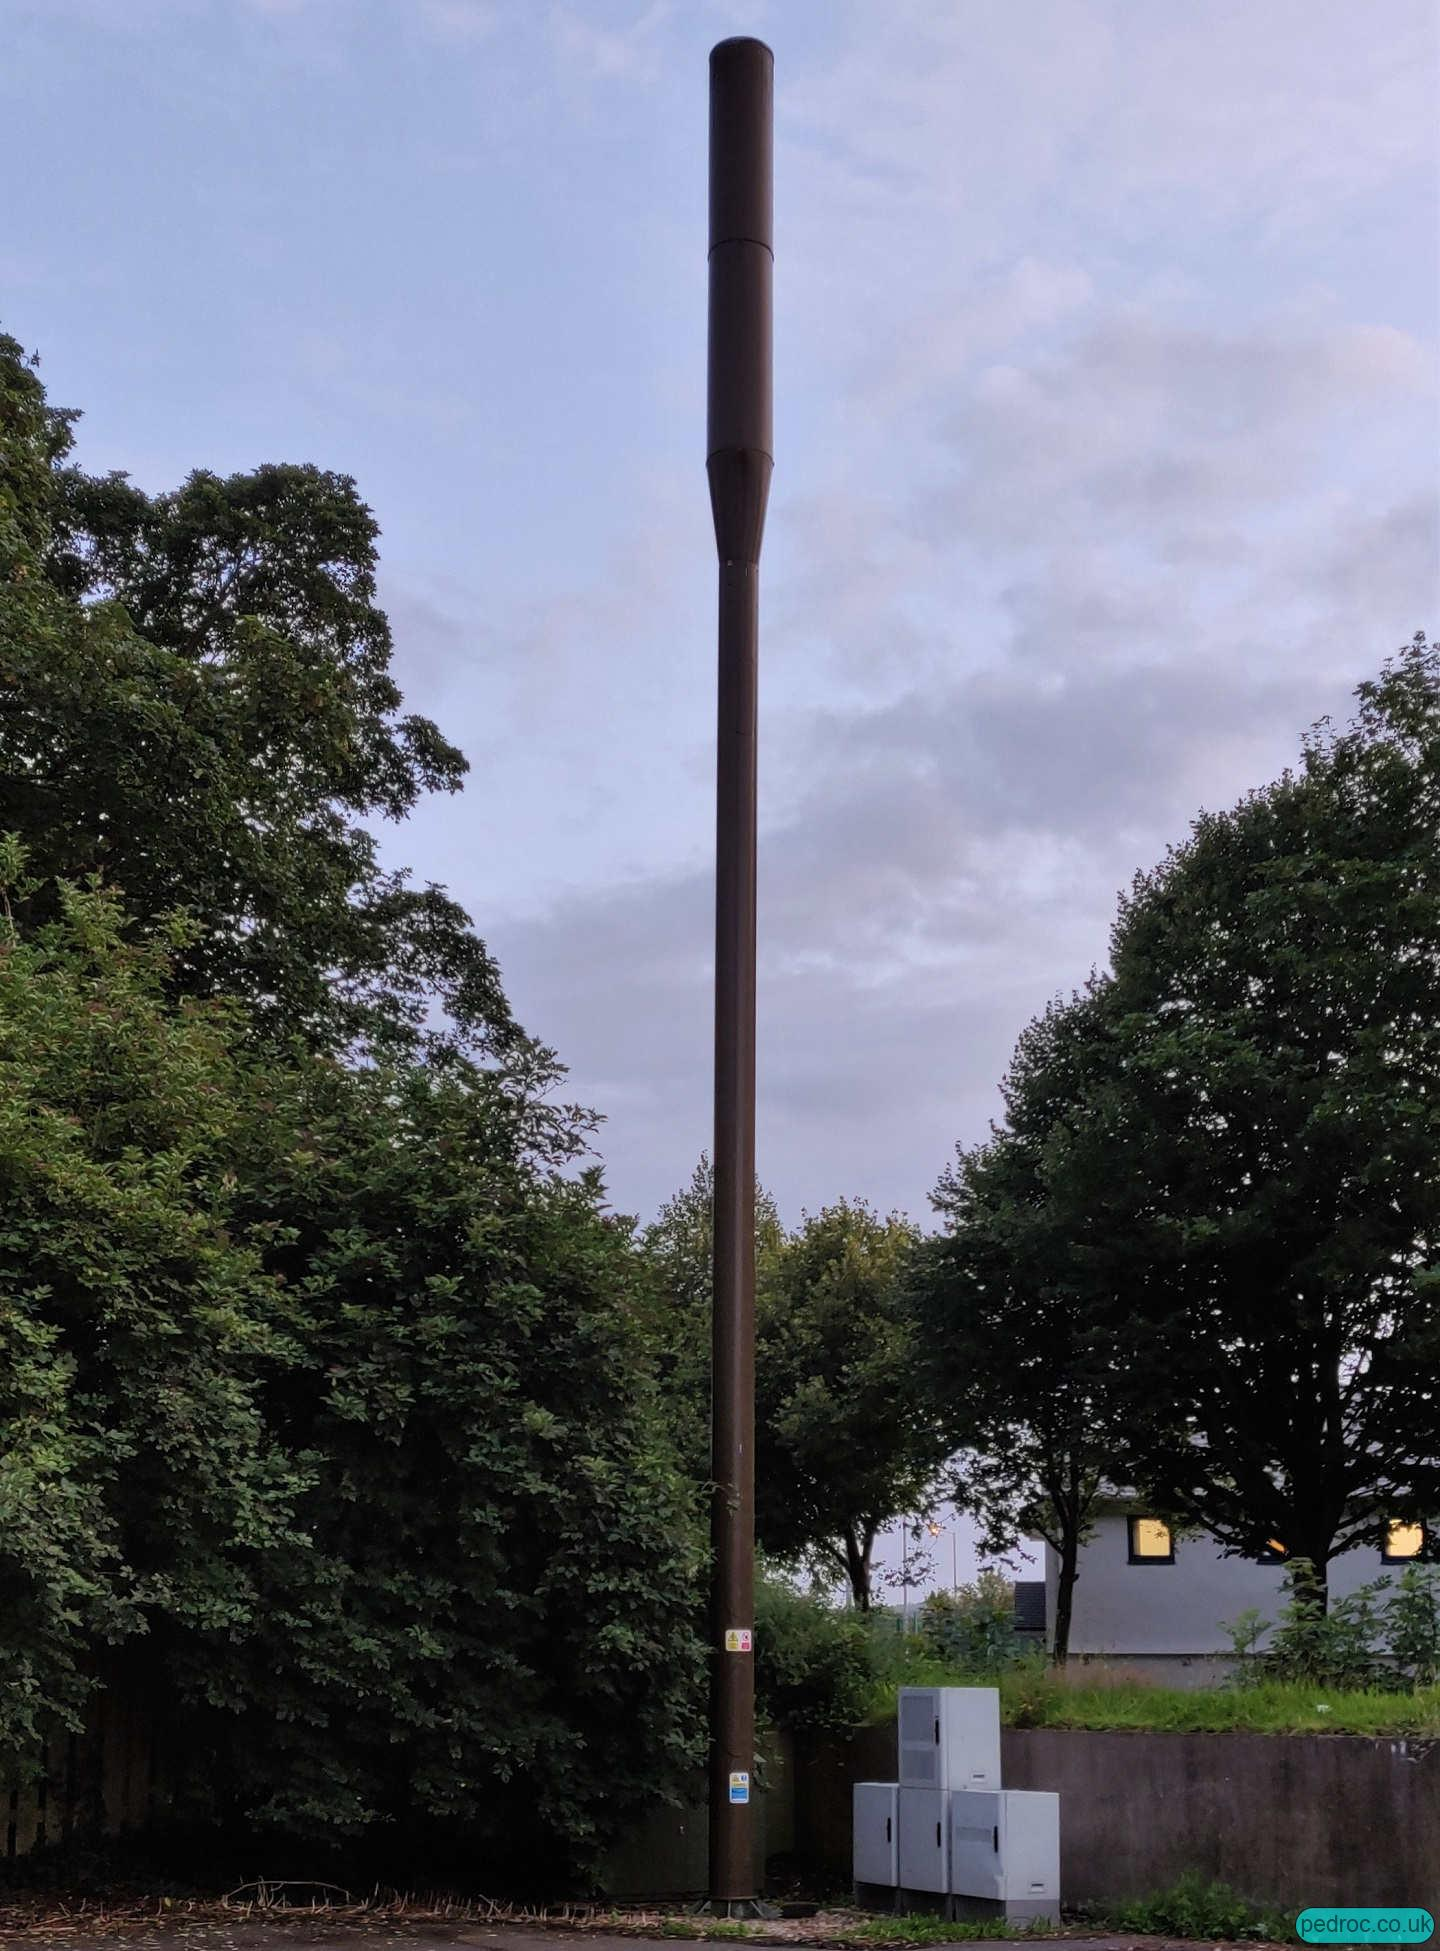 Manx Telecom Pole at Peel road car park